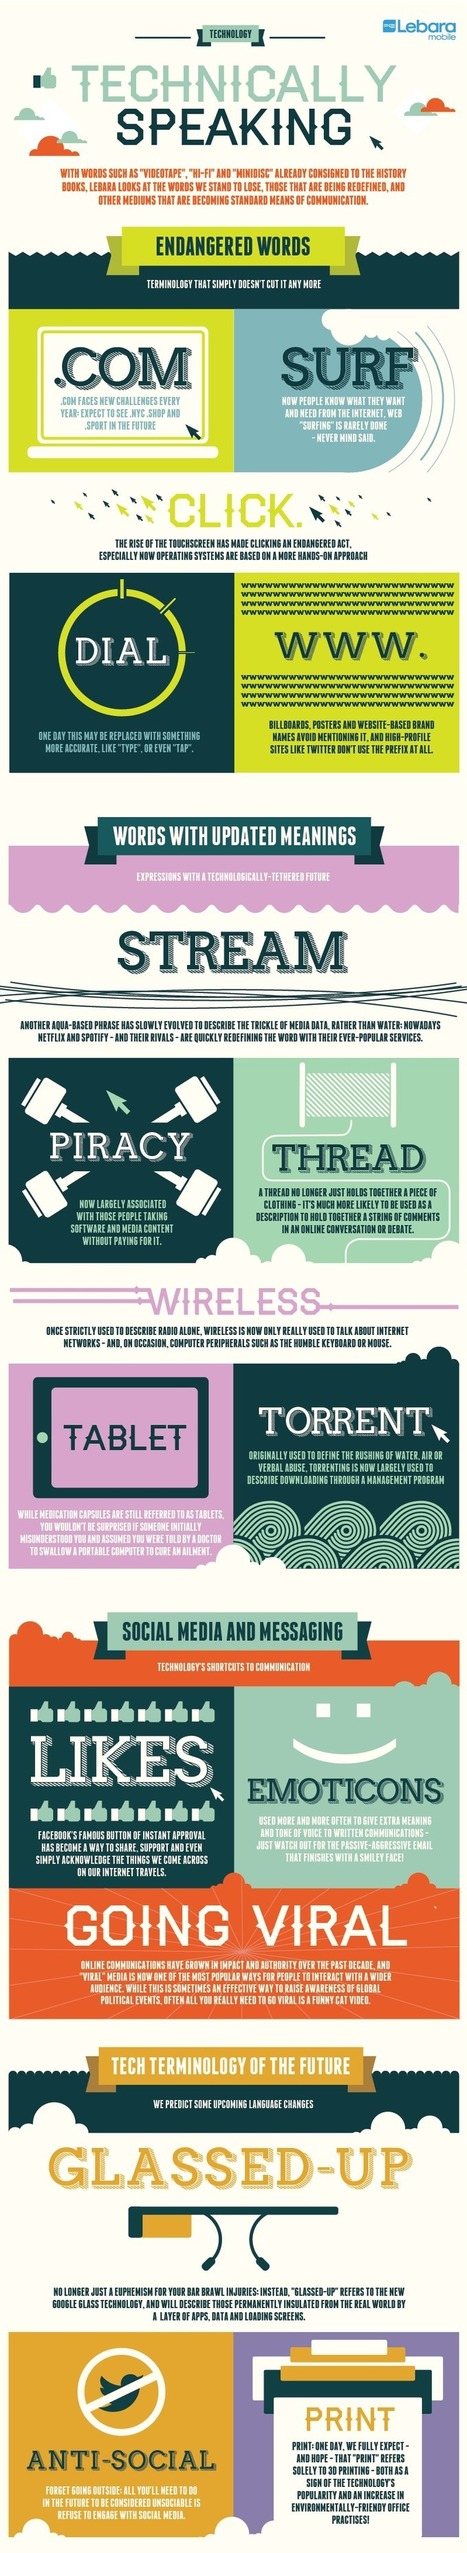 A guide to new outdated technology terms | Language Studies | Scoop.it